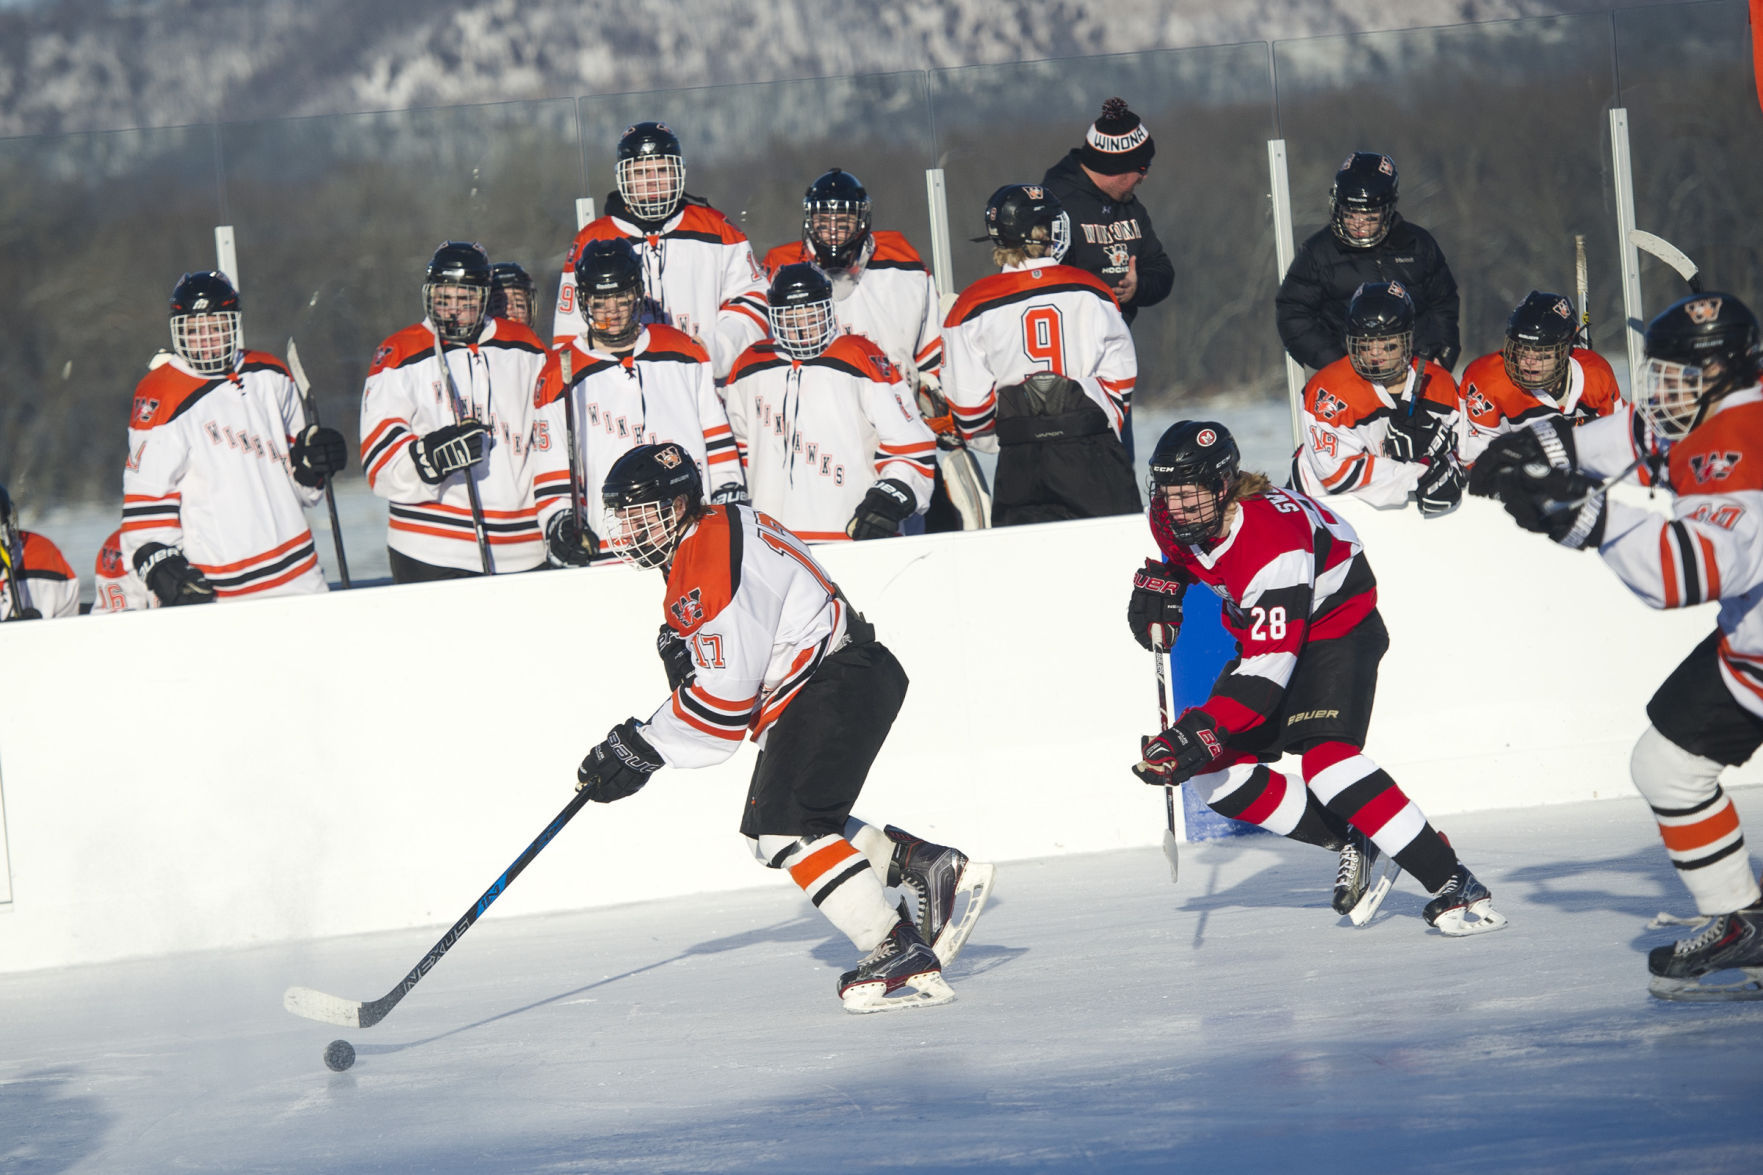 MN H.S.: 'A Great Day' - Winhawks, Scarlets Can't Get Enough Of The Outdoor Hockey Experience